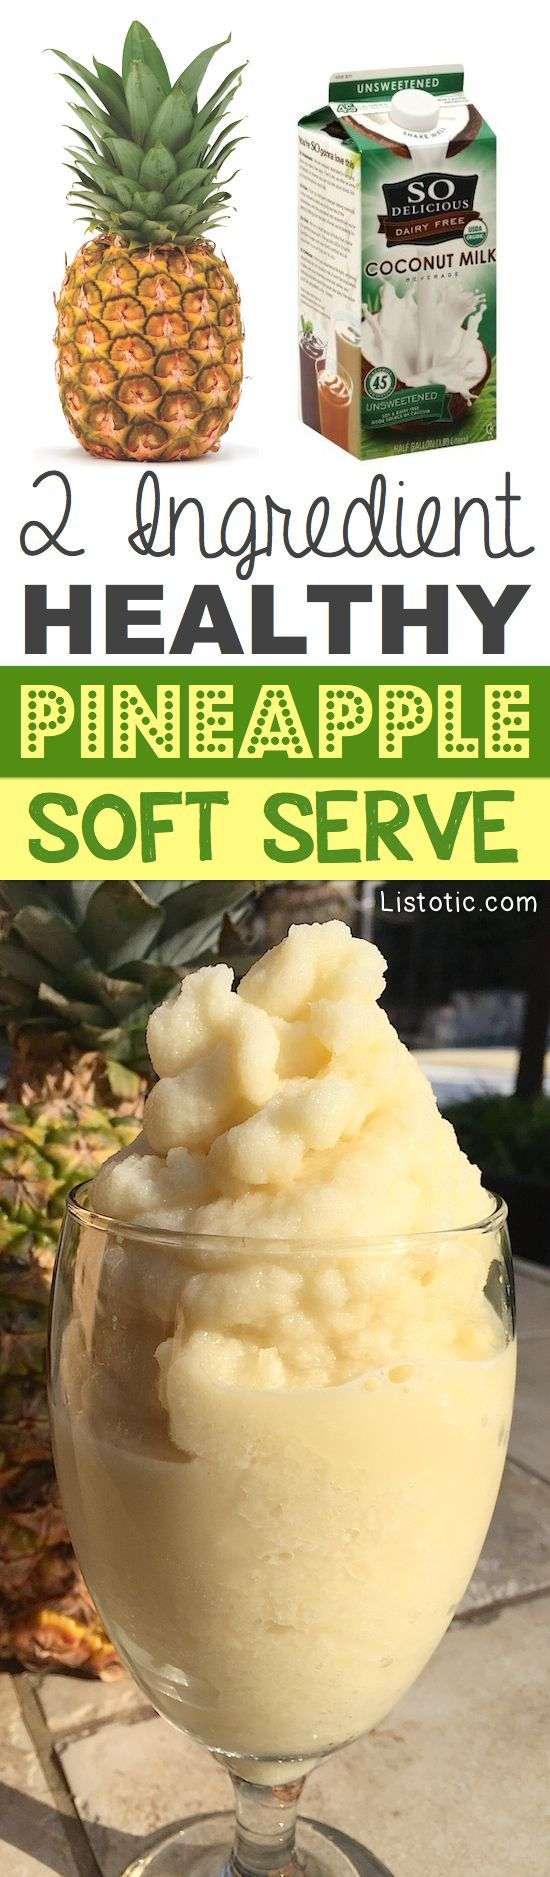 A 2 Ingredient, healthy pineapple soft serve like treat! This healthy snack recipe is similar to a smoothie but thicker and creamier. The perfect guilt-free, dairy-free dessert! | Listotic.com